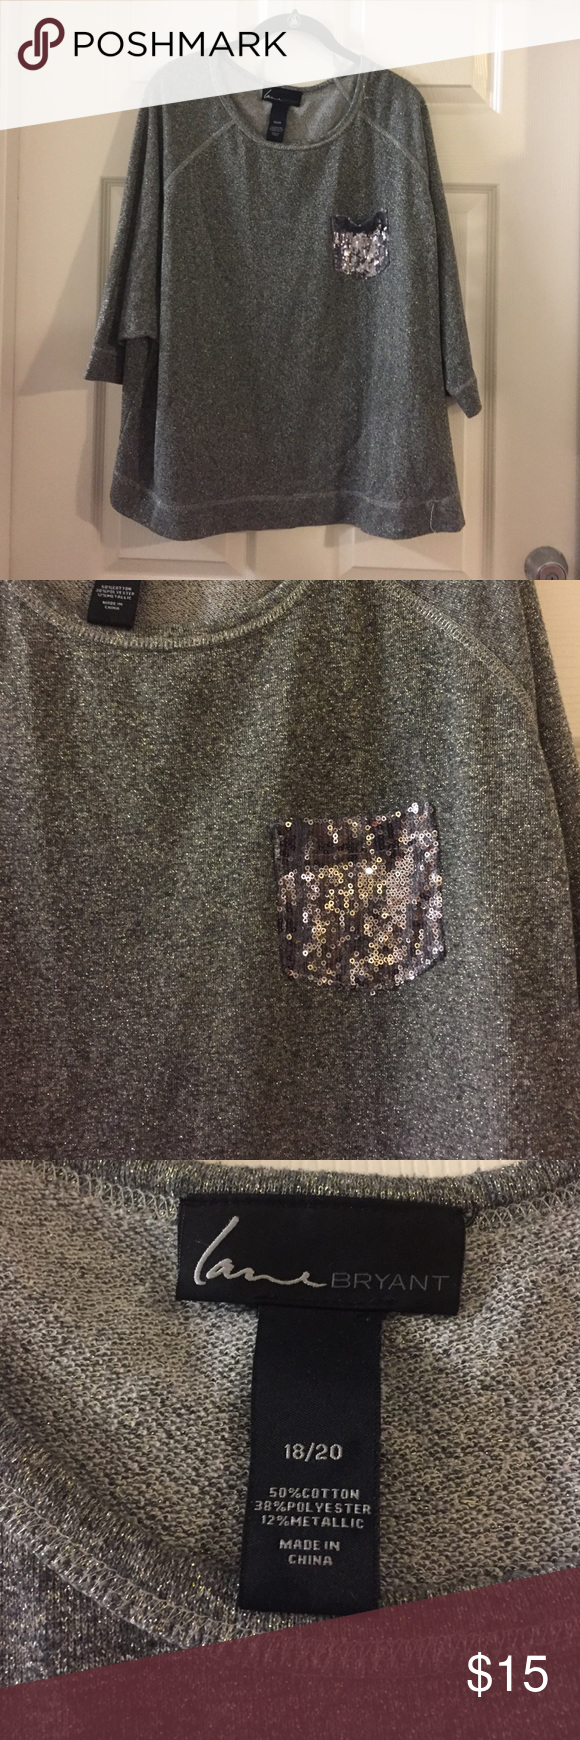 ❗️SALE❗️Sparkly Grey short sleeve sweater 💢everything must go make me an offer!! 💢.     Short sleeve/ 3/4 sleeve sparkly grey sweater with sparkle pocket size 18/20 Lane Bryant Sweaters